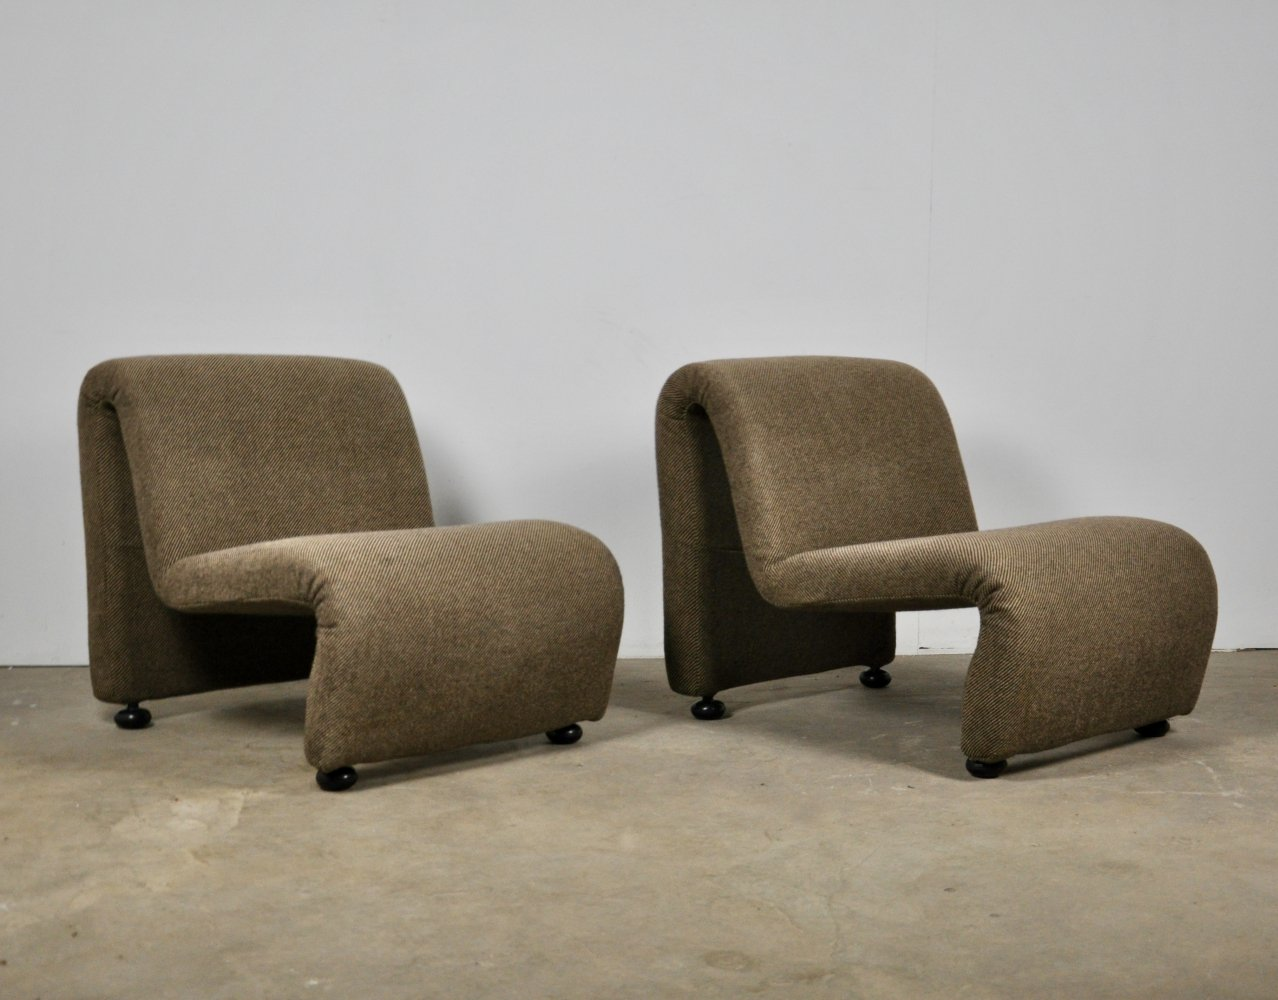 Pair of Lounge Chairs, 1970s